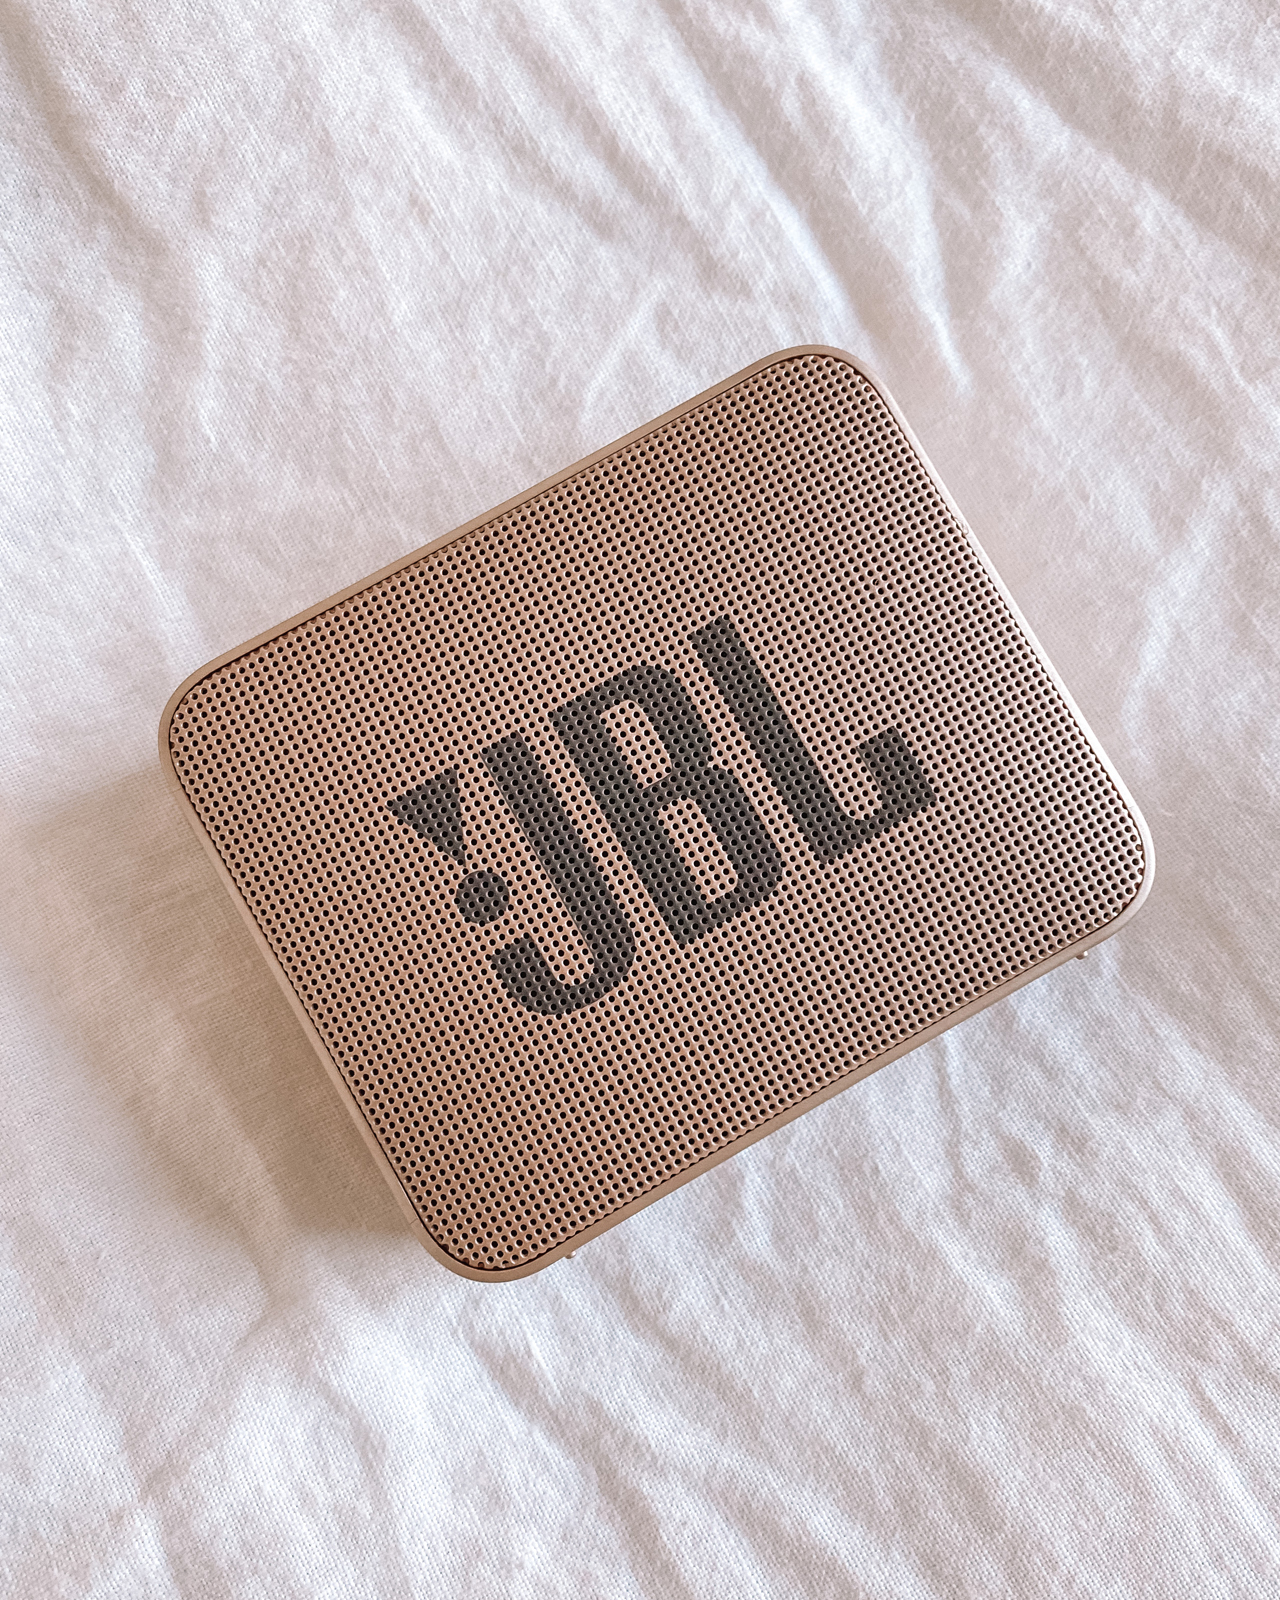 Fashion Jackson Amazon Travel Essentials Mini JBL Bloothooth Speaker